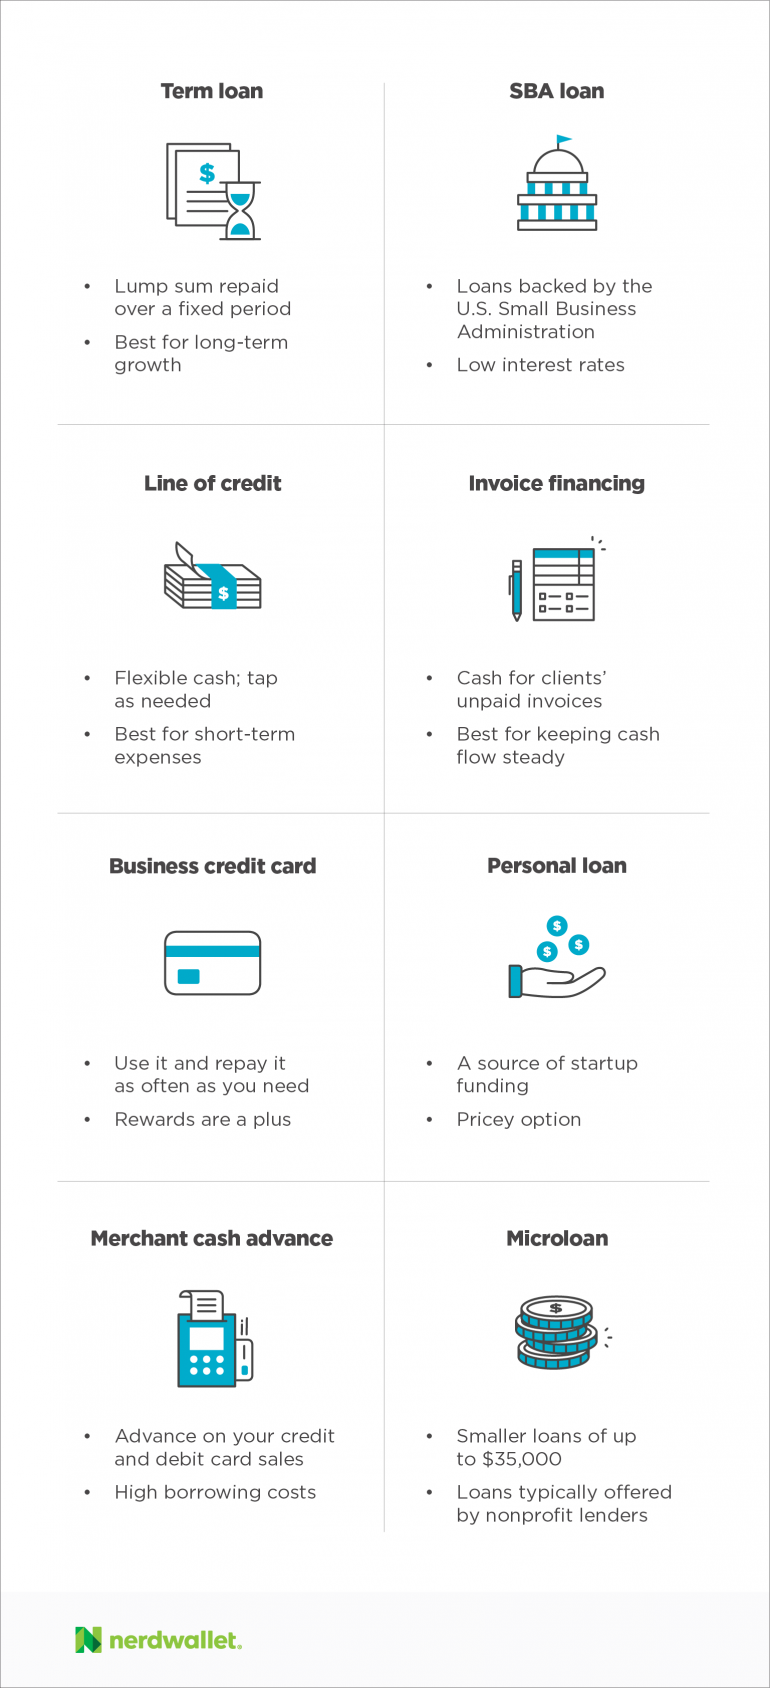 How to get a small business loan in 5 steps nerdwallet small business financing in simple terms reheart Gallery